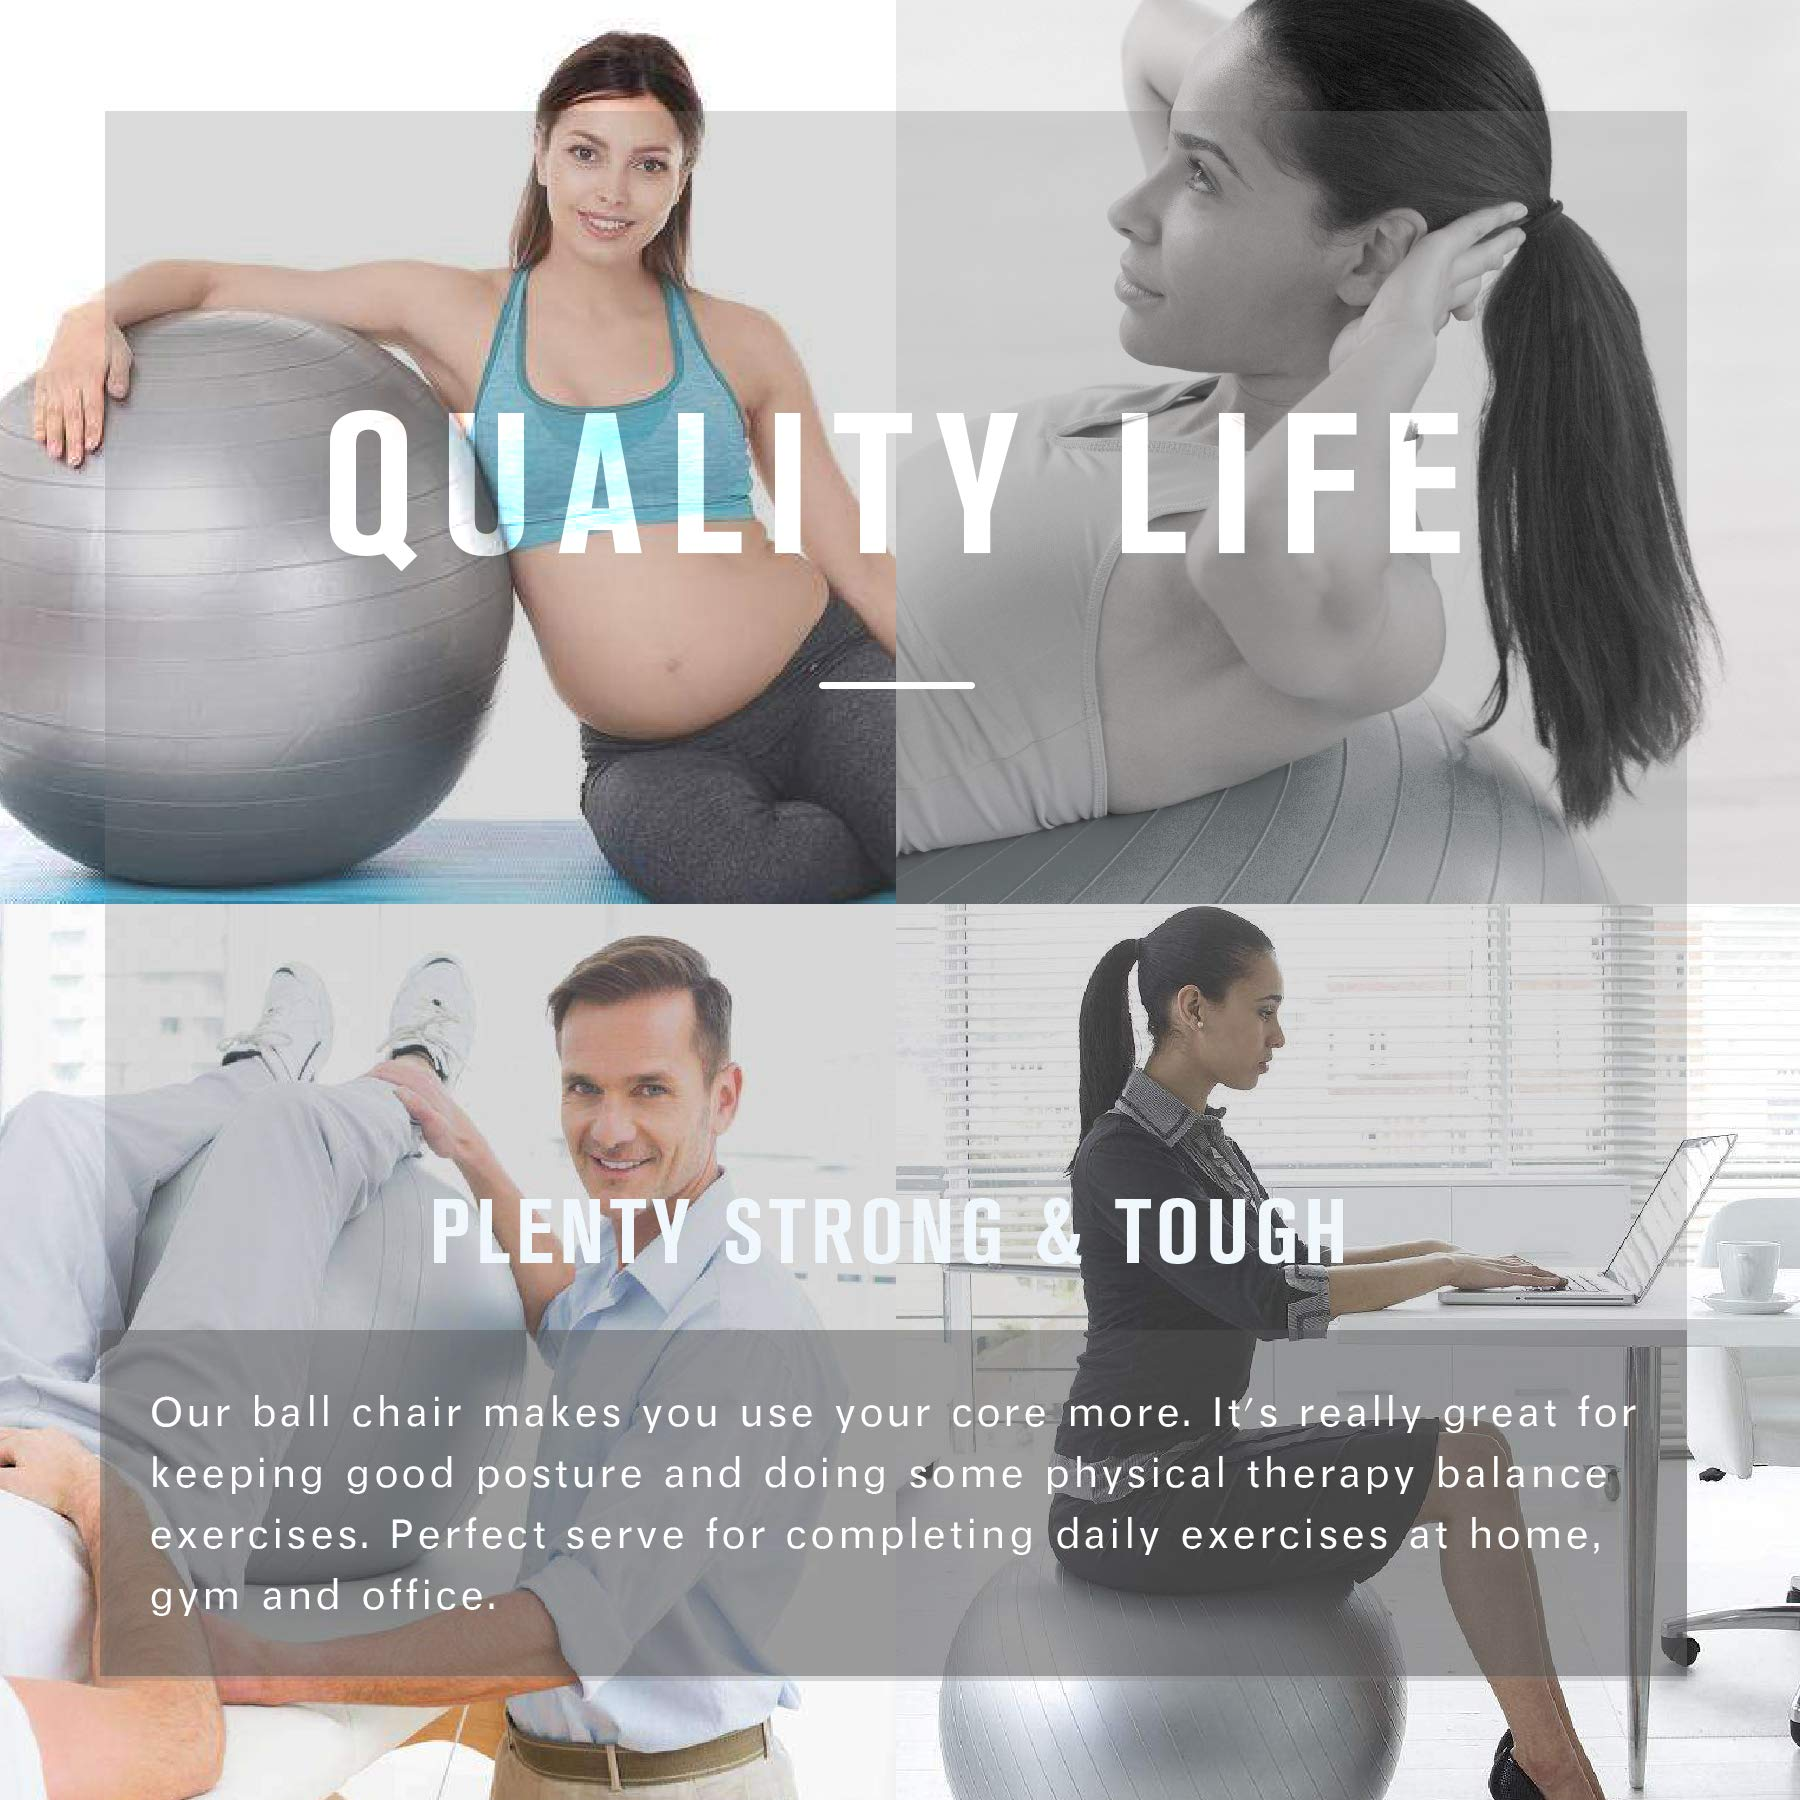 Exercise Ball (65cm Chocooolate) Extra Thick Yoga Ball Chair,Yoga Ball Cover Anti-Burst Heavy Duty Stability Ball Supports 2200lbs, Fitness and Birthing Ball with Inflator and Handle(& Home & Gym) by Guken (Image #2)